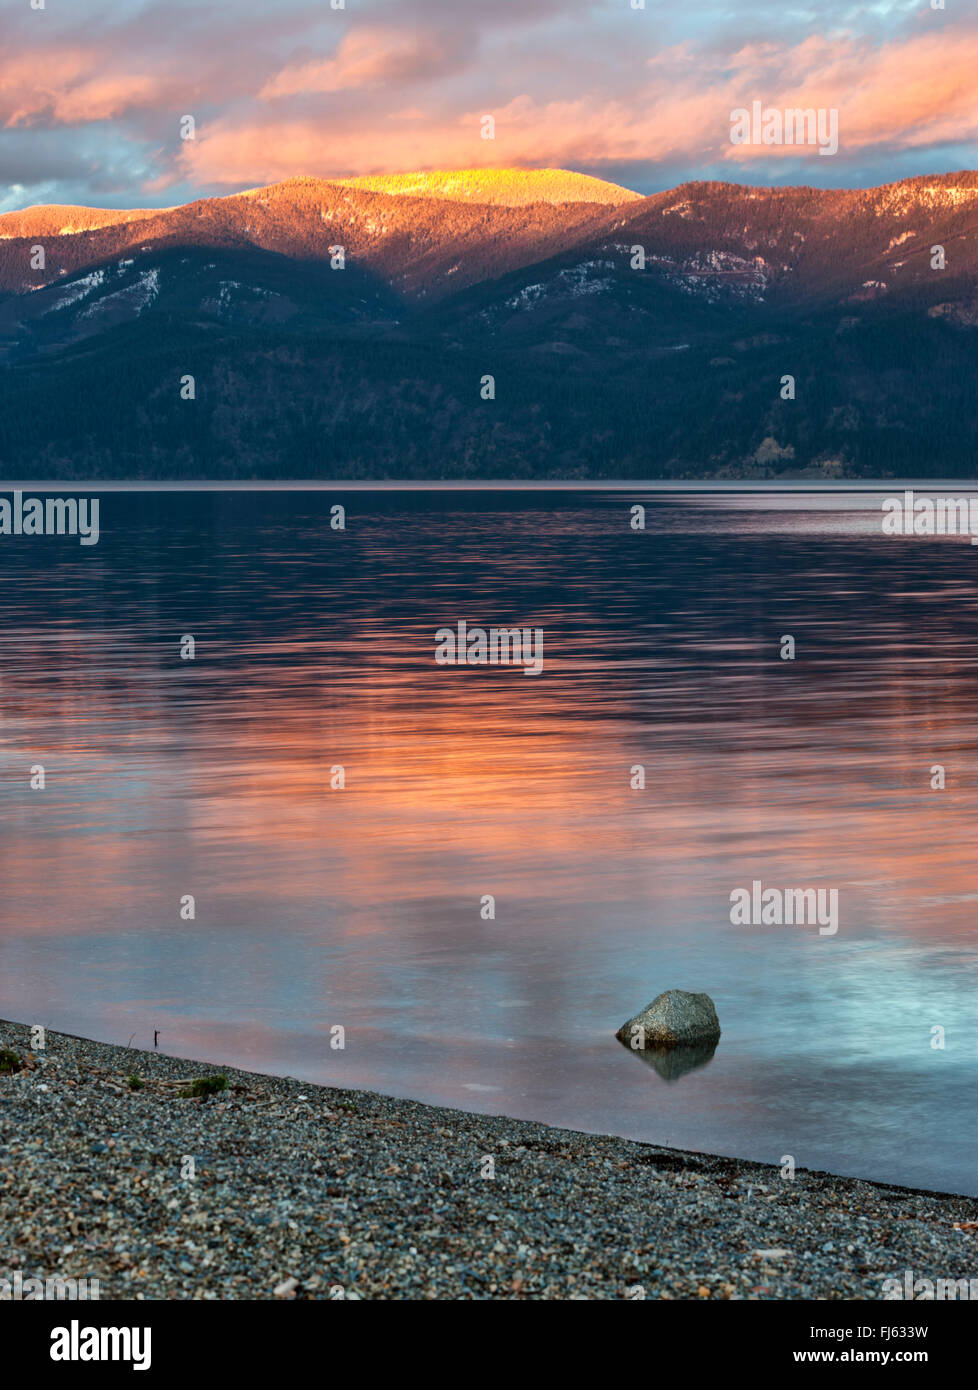 Pend Oreille Lake in north Idaho. - Stock Image